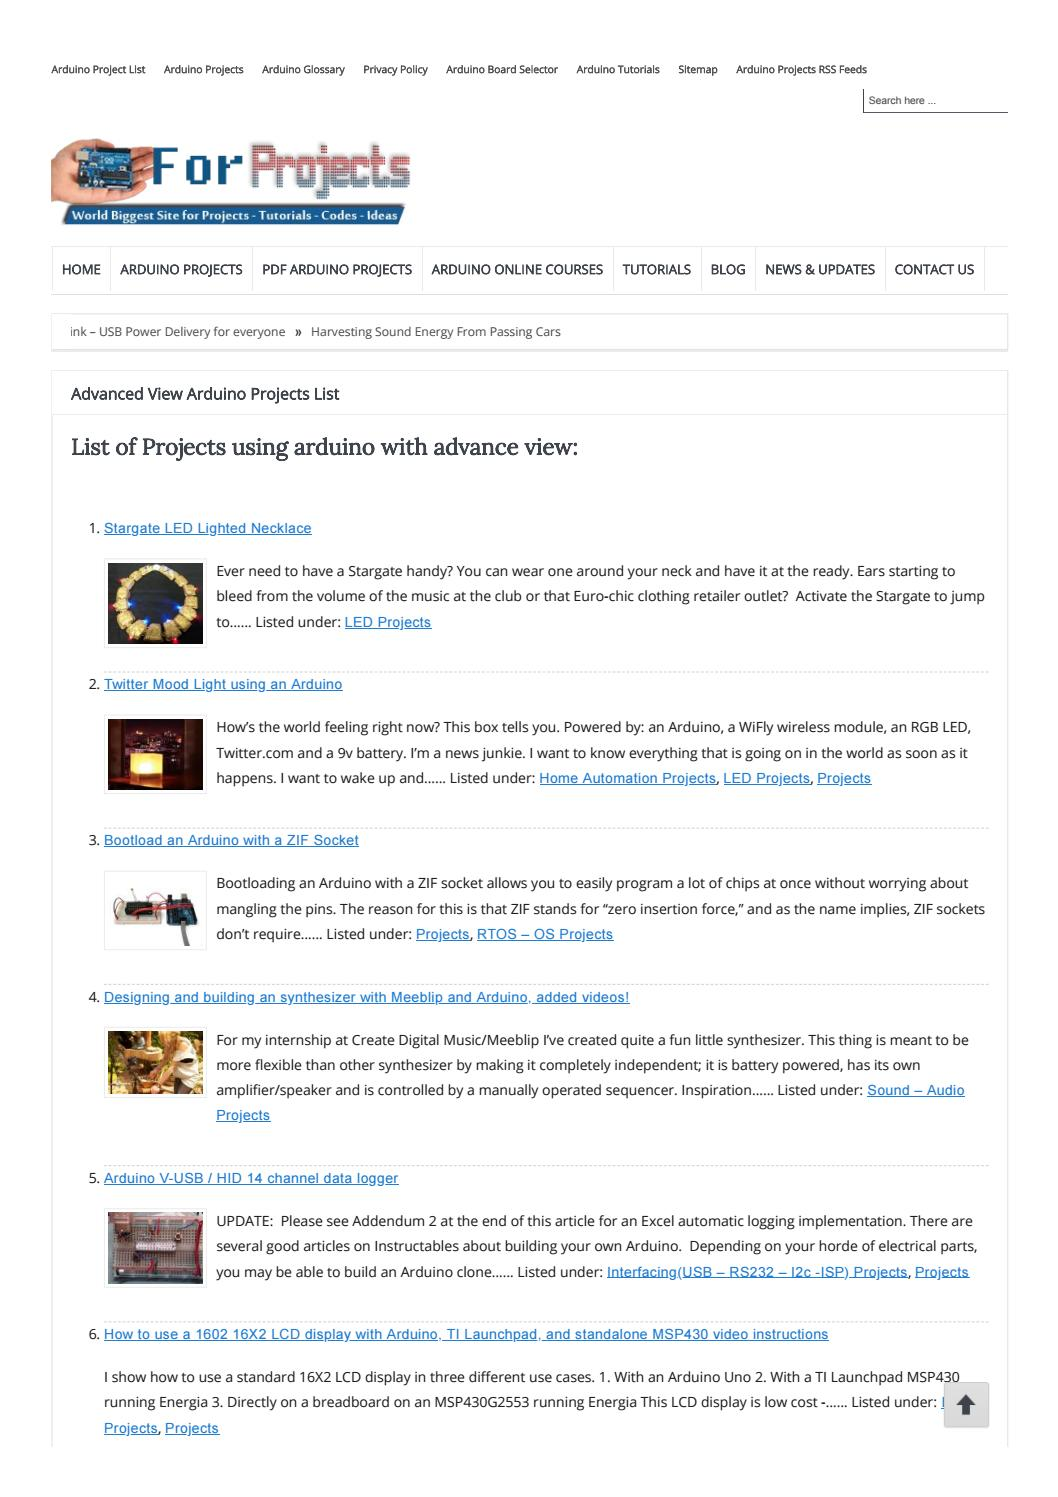 Advanced-View-Arduino-Projects-List-Part-4-Use-Arduino-for